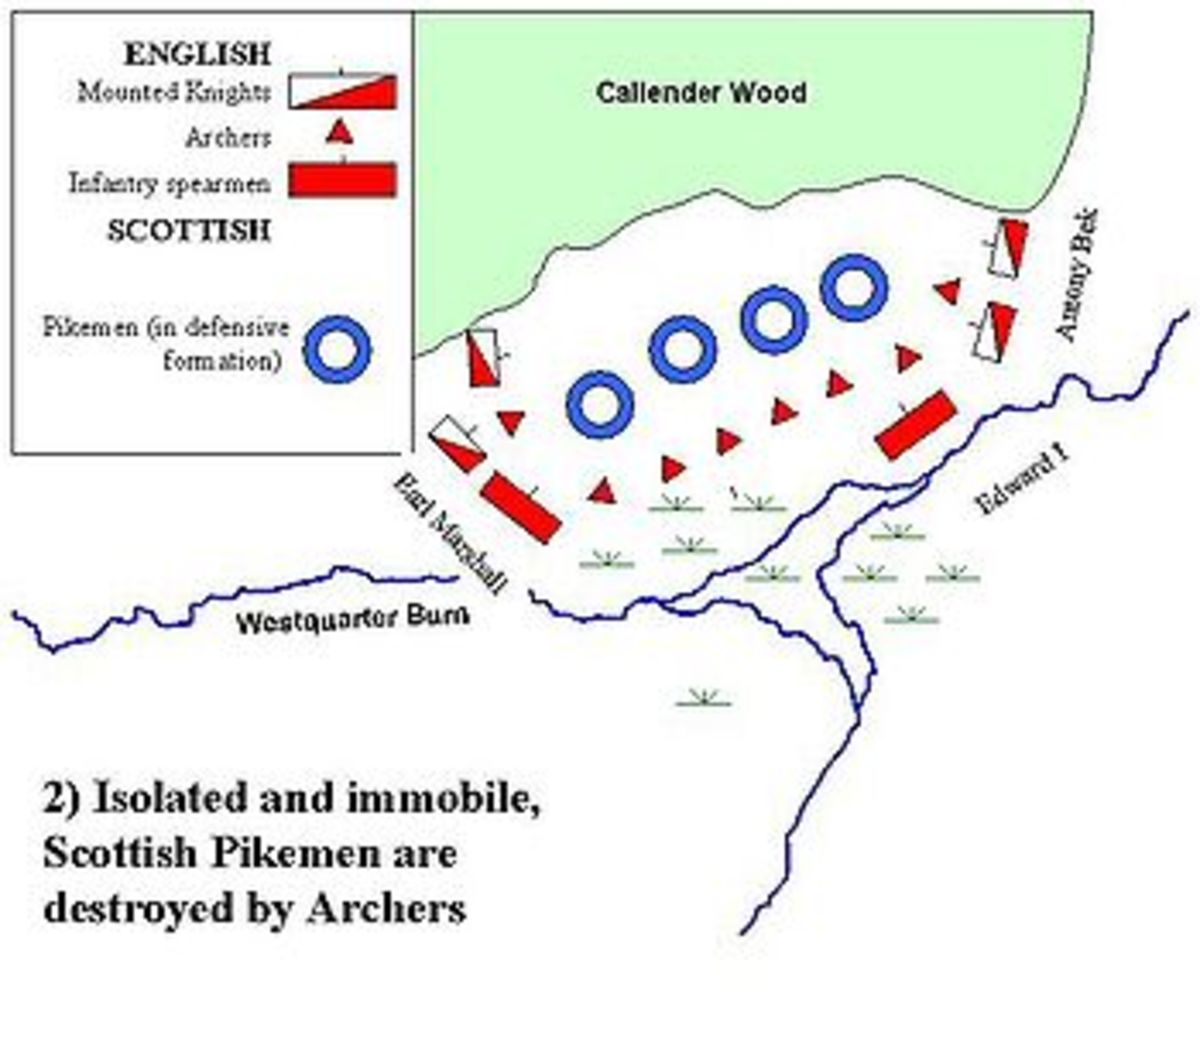 The Positions of the English and Scottish at Falkirk.